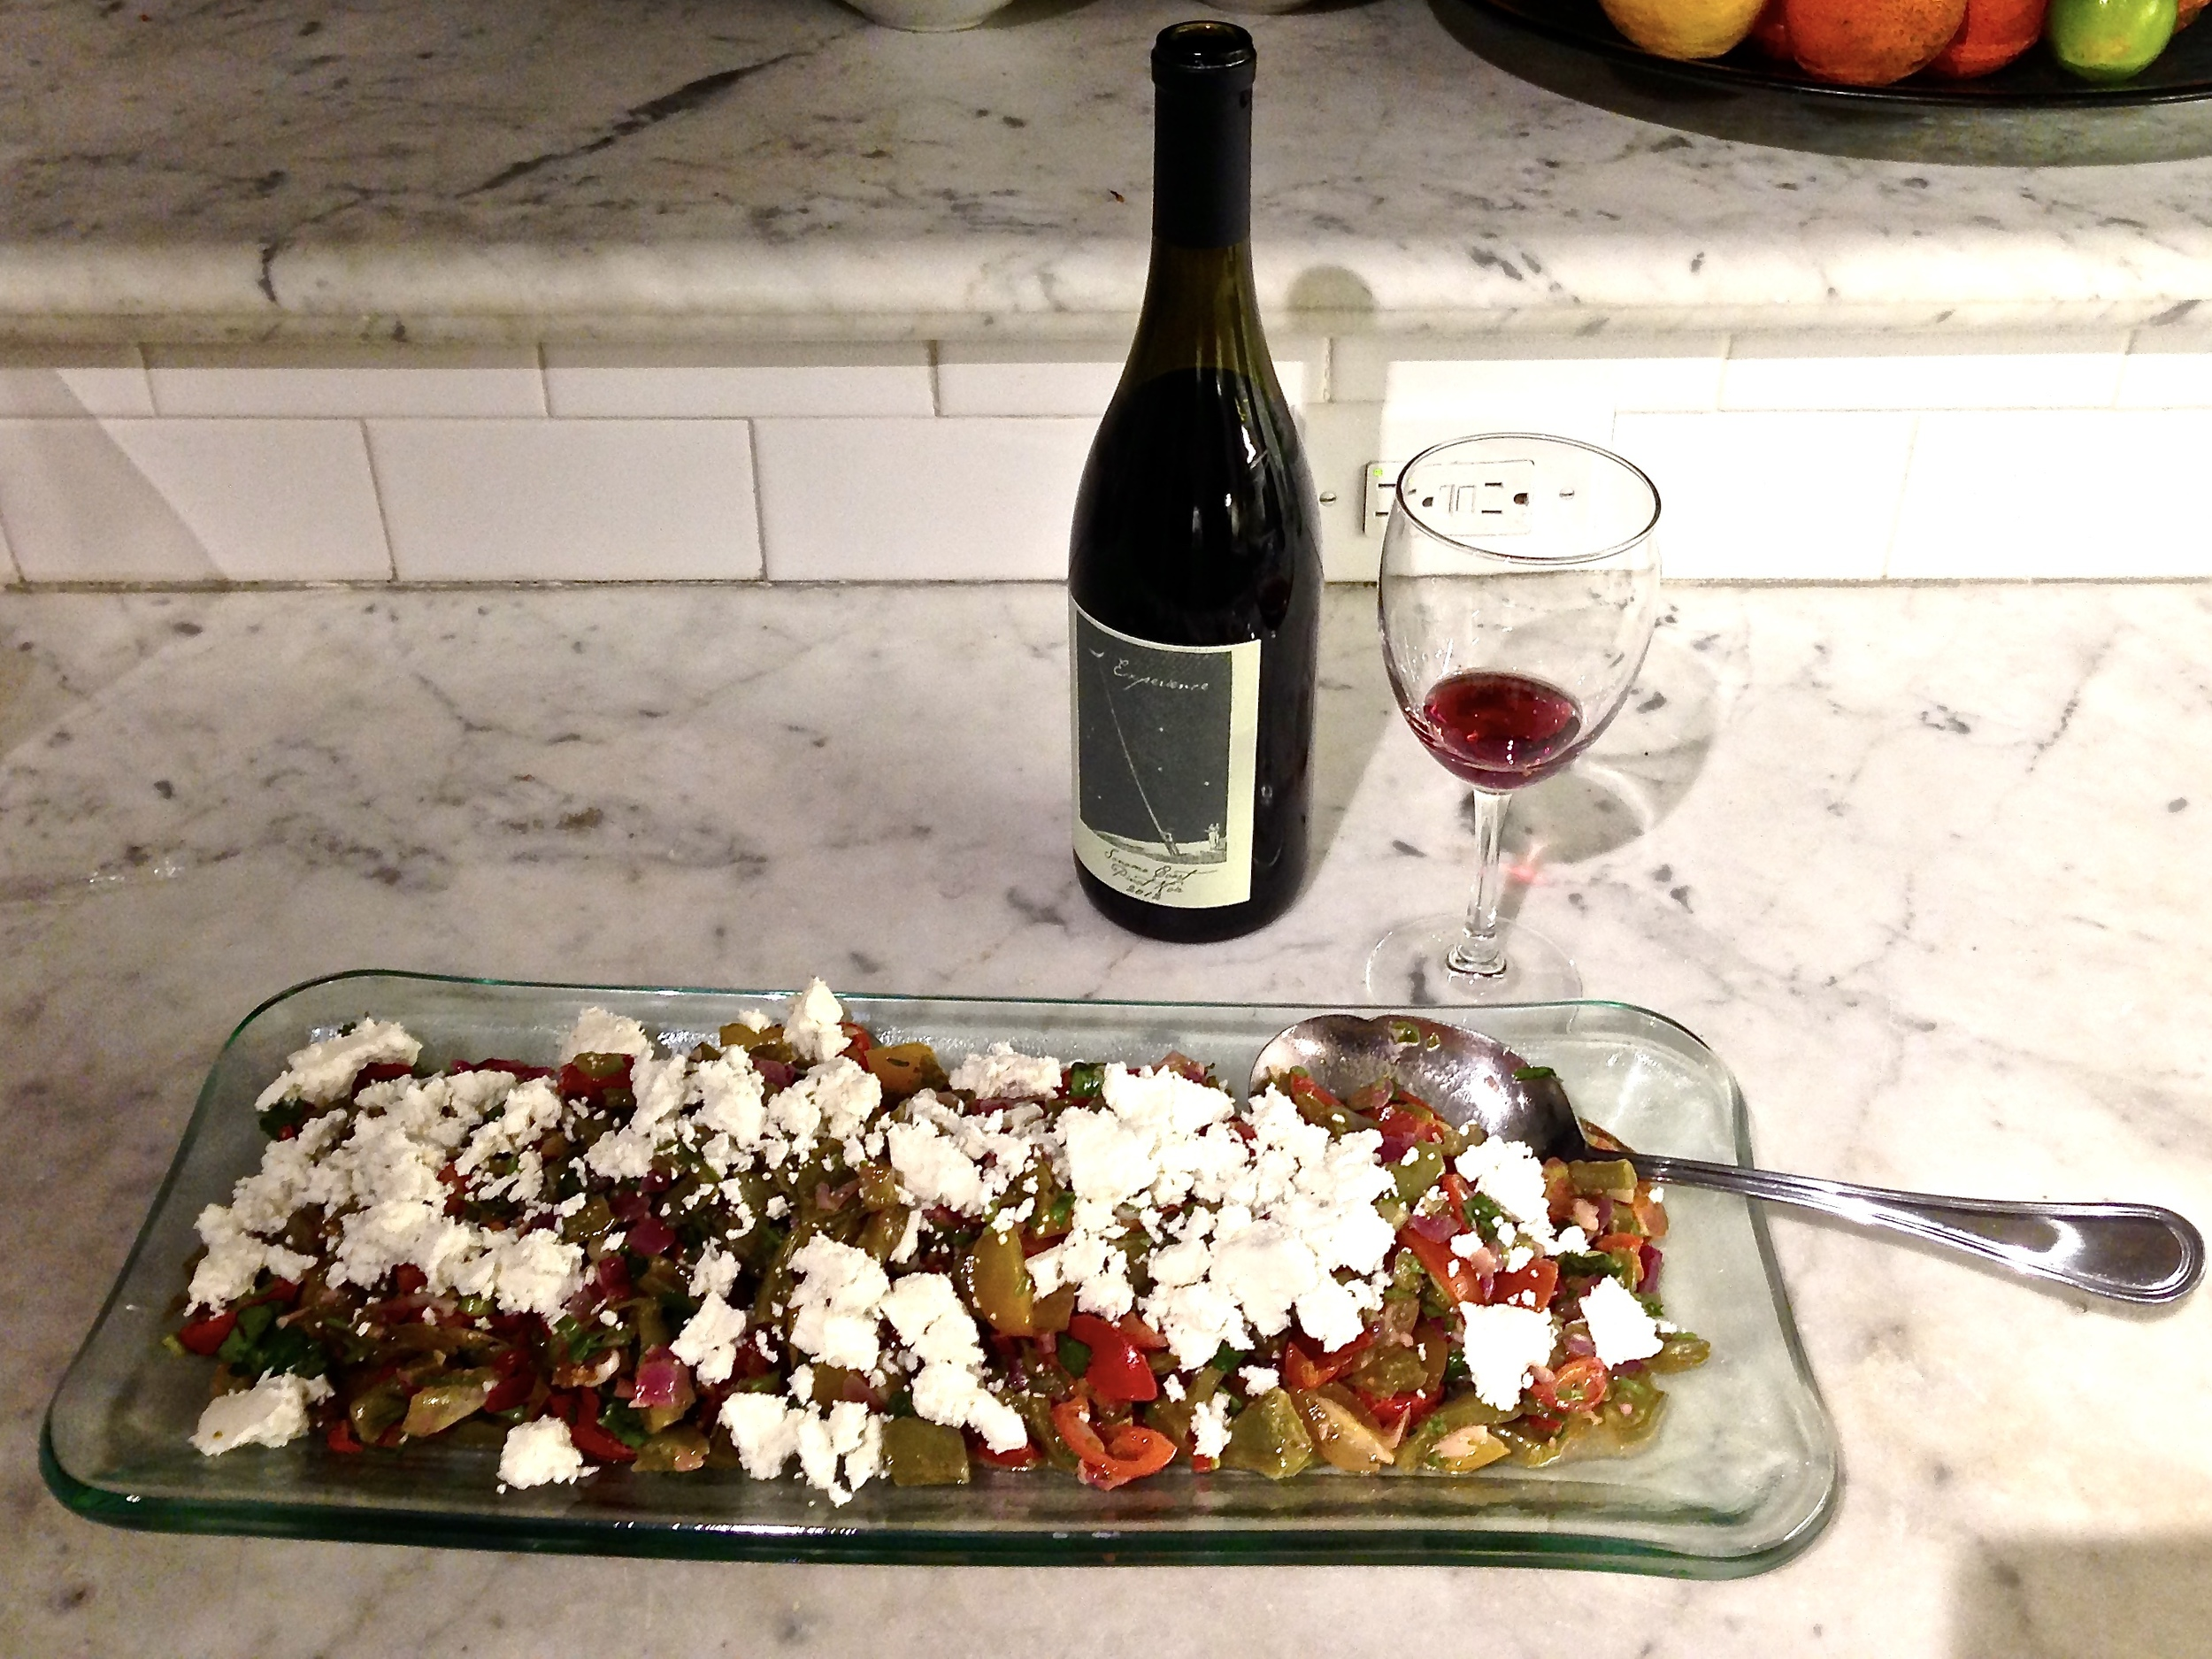 Nopales salad with queso fresco and a juicy red in Malibu, CA